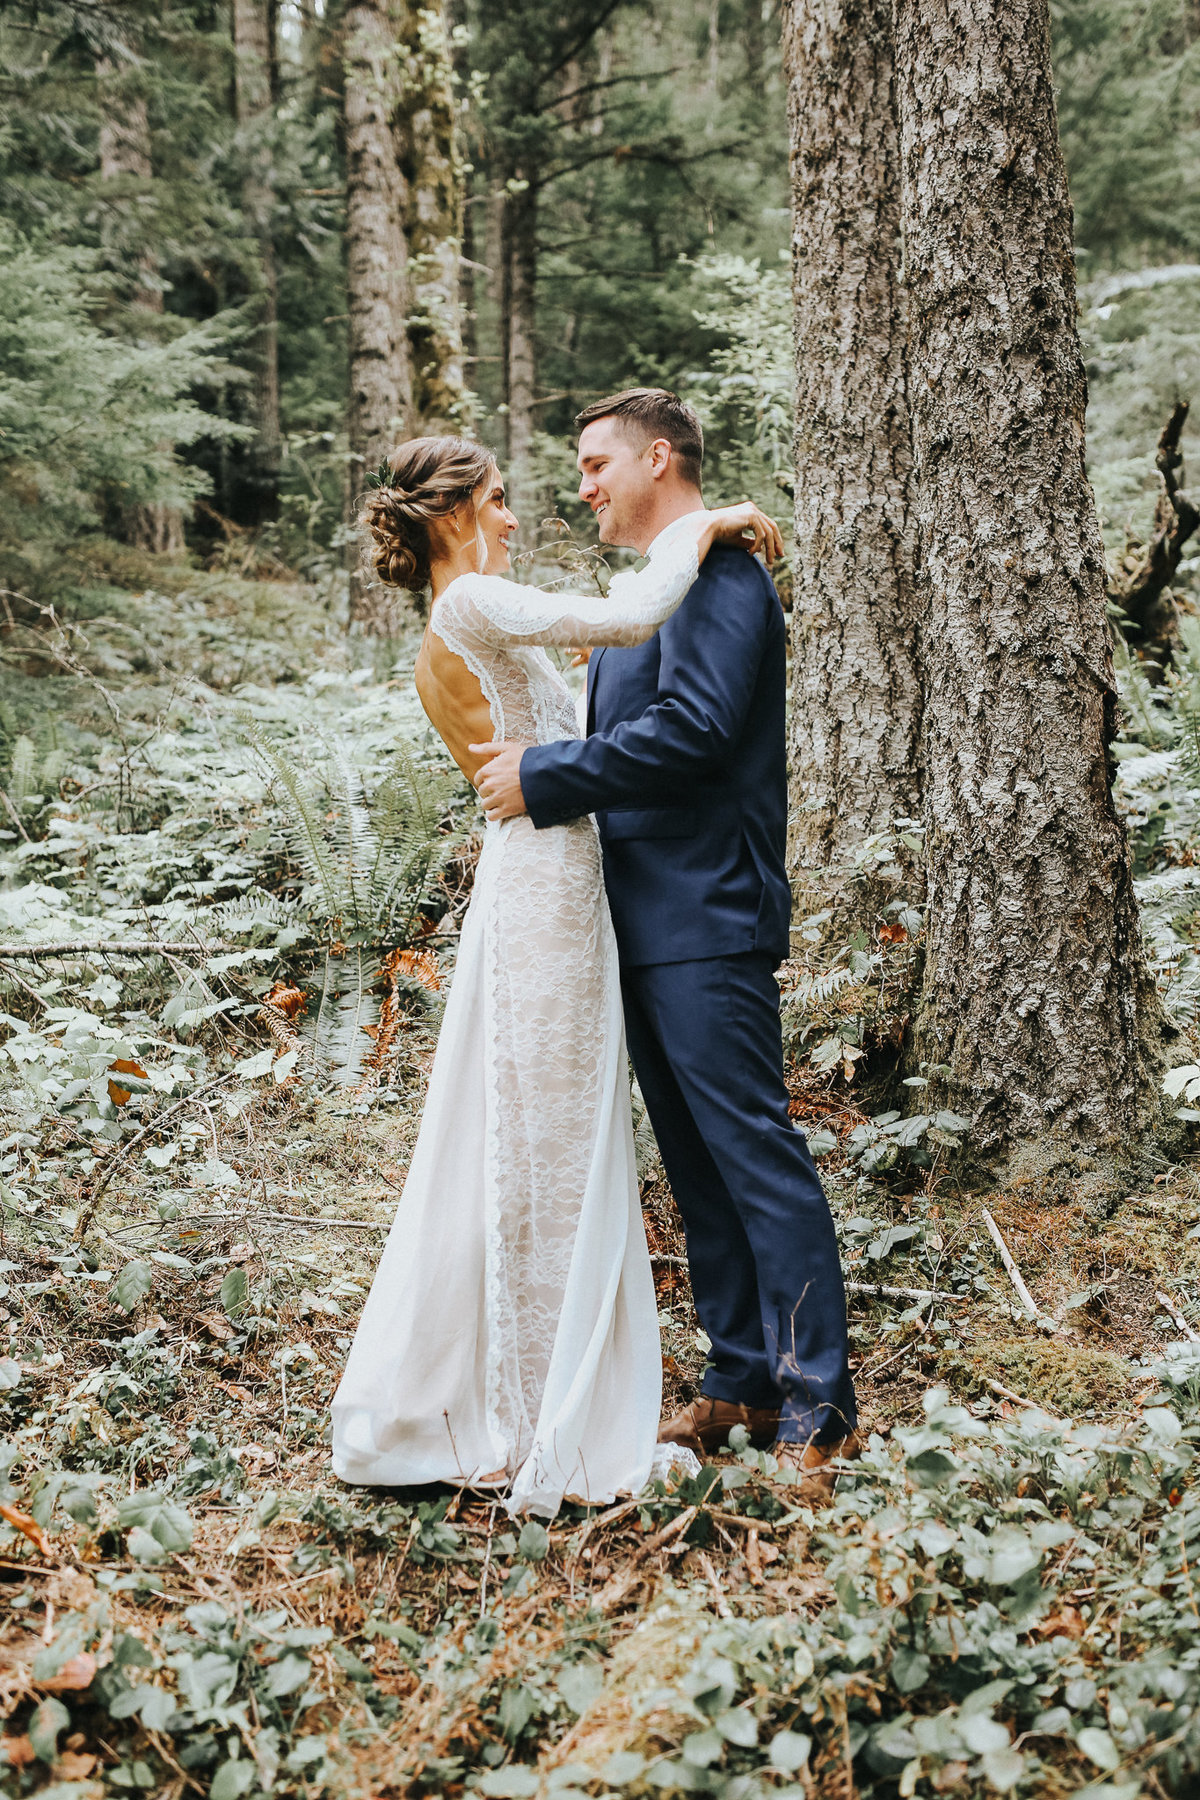 First look with bride and groom in the woods of Port Angeles, Washington